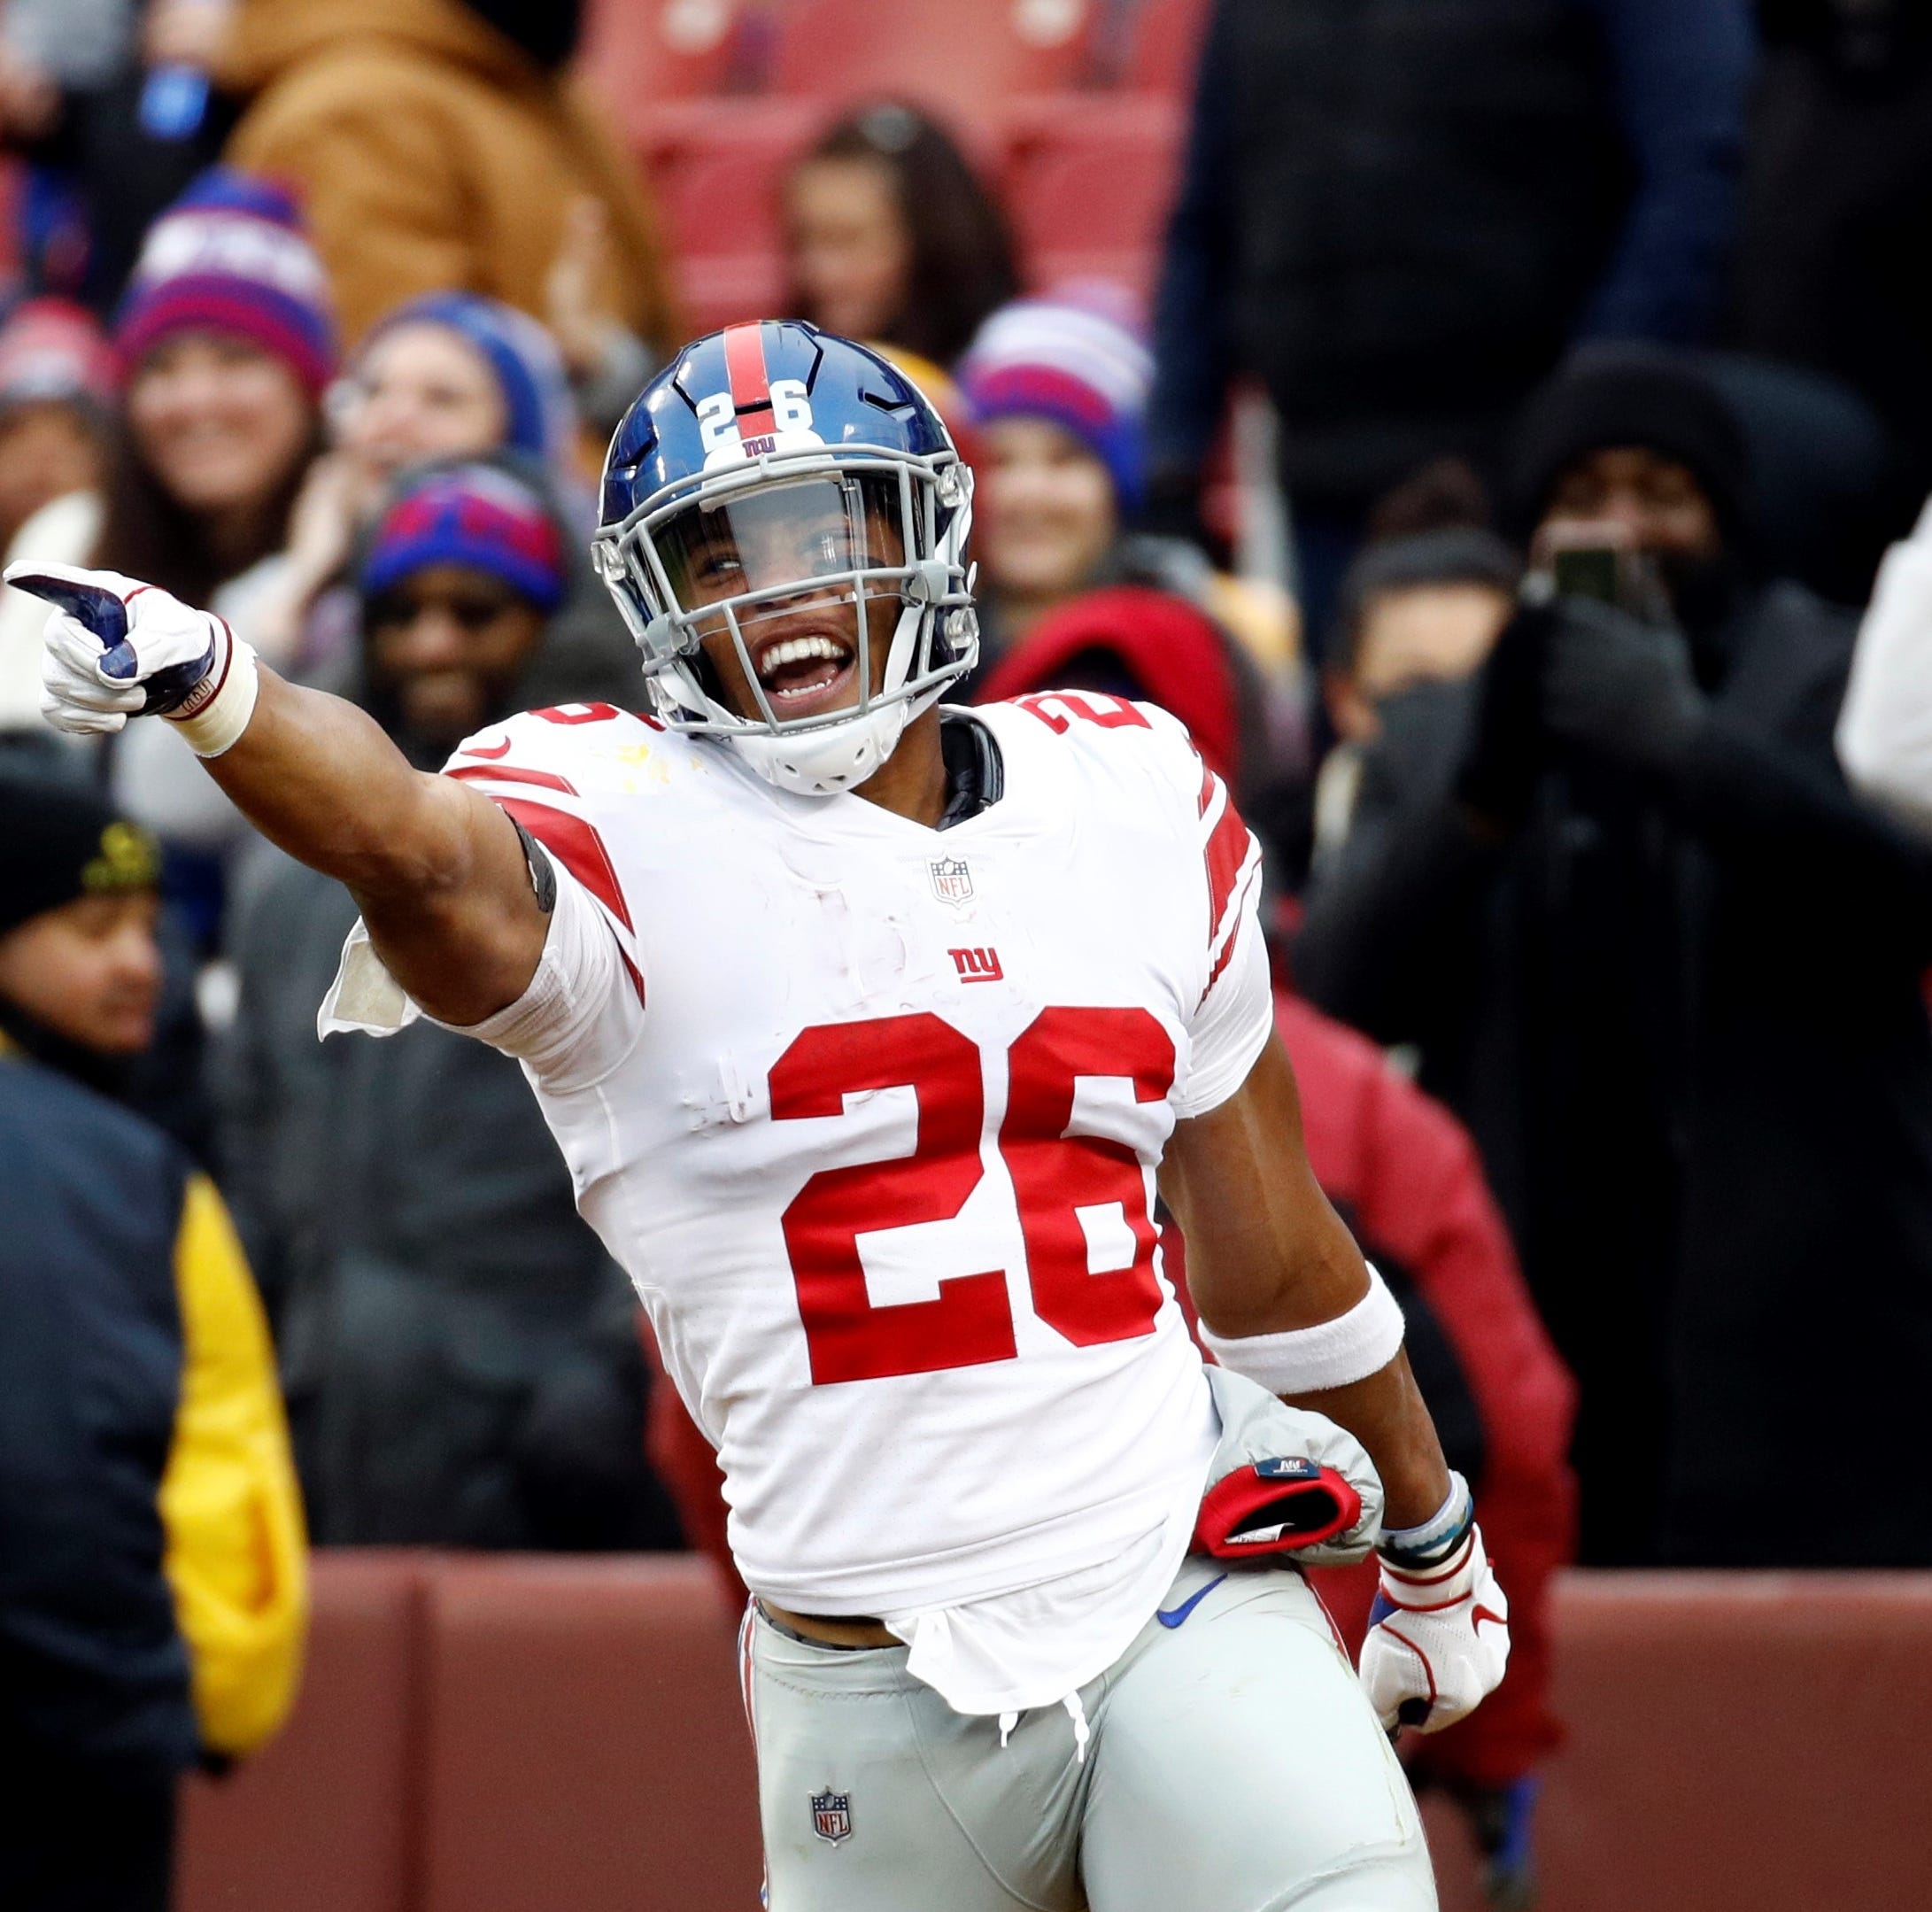 Saquon Barkley runs wild in New York Giants' 40-16 triumph over Washington Redskins